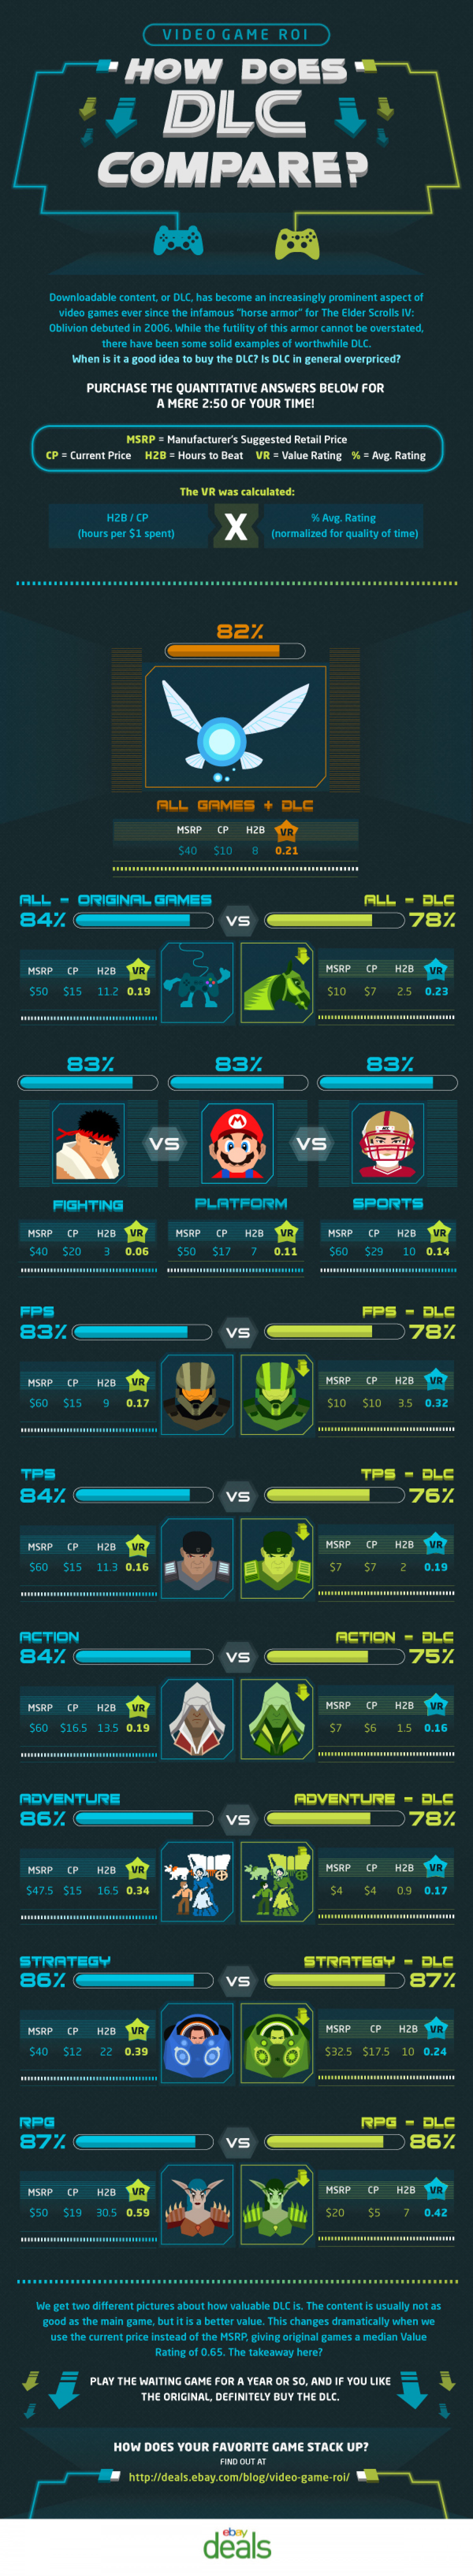 Video Game DLC ROI Infographic